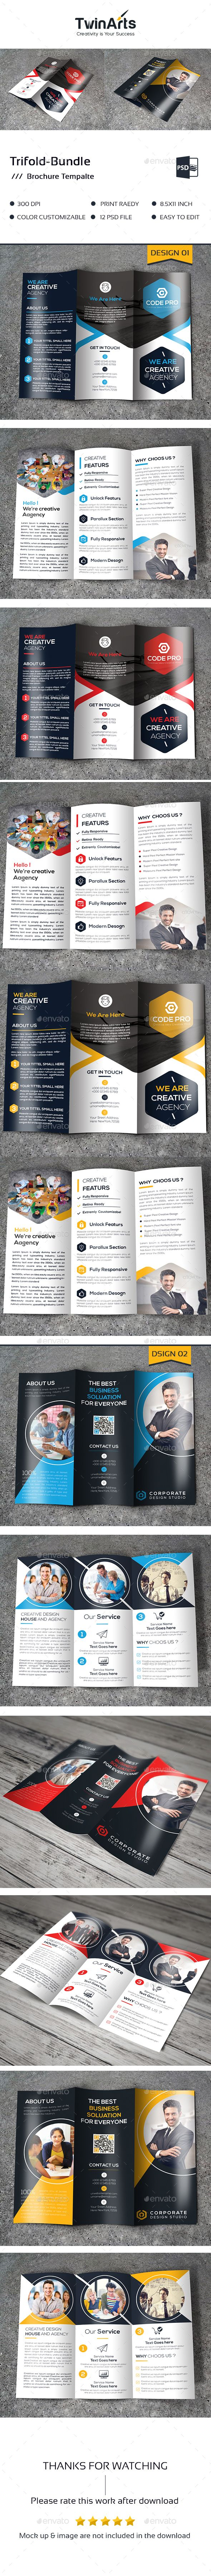 2 Tri-fold Brochure Template PSD. Download here: http://graphicriver.net/item/trifold-bundle_2-in-1/16690349?ref=ksioks